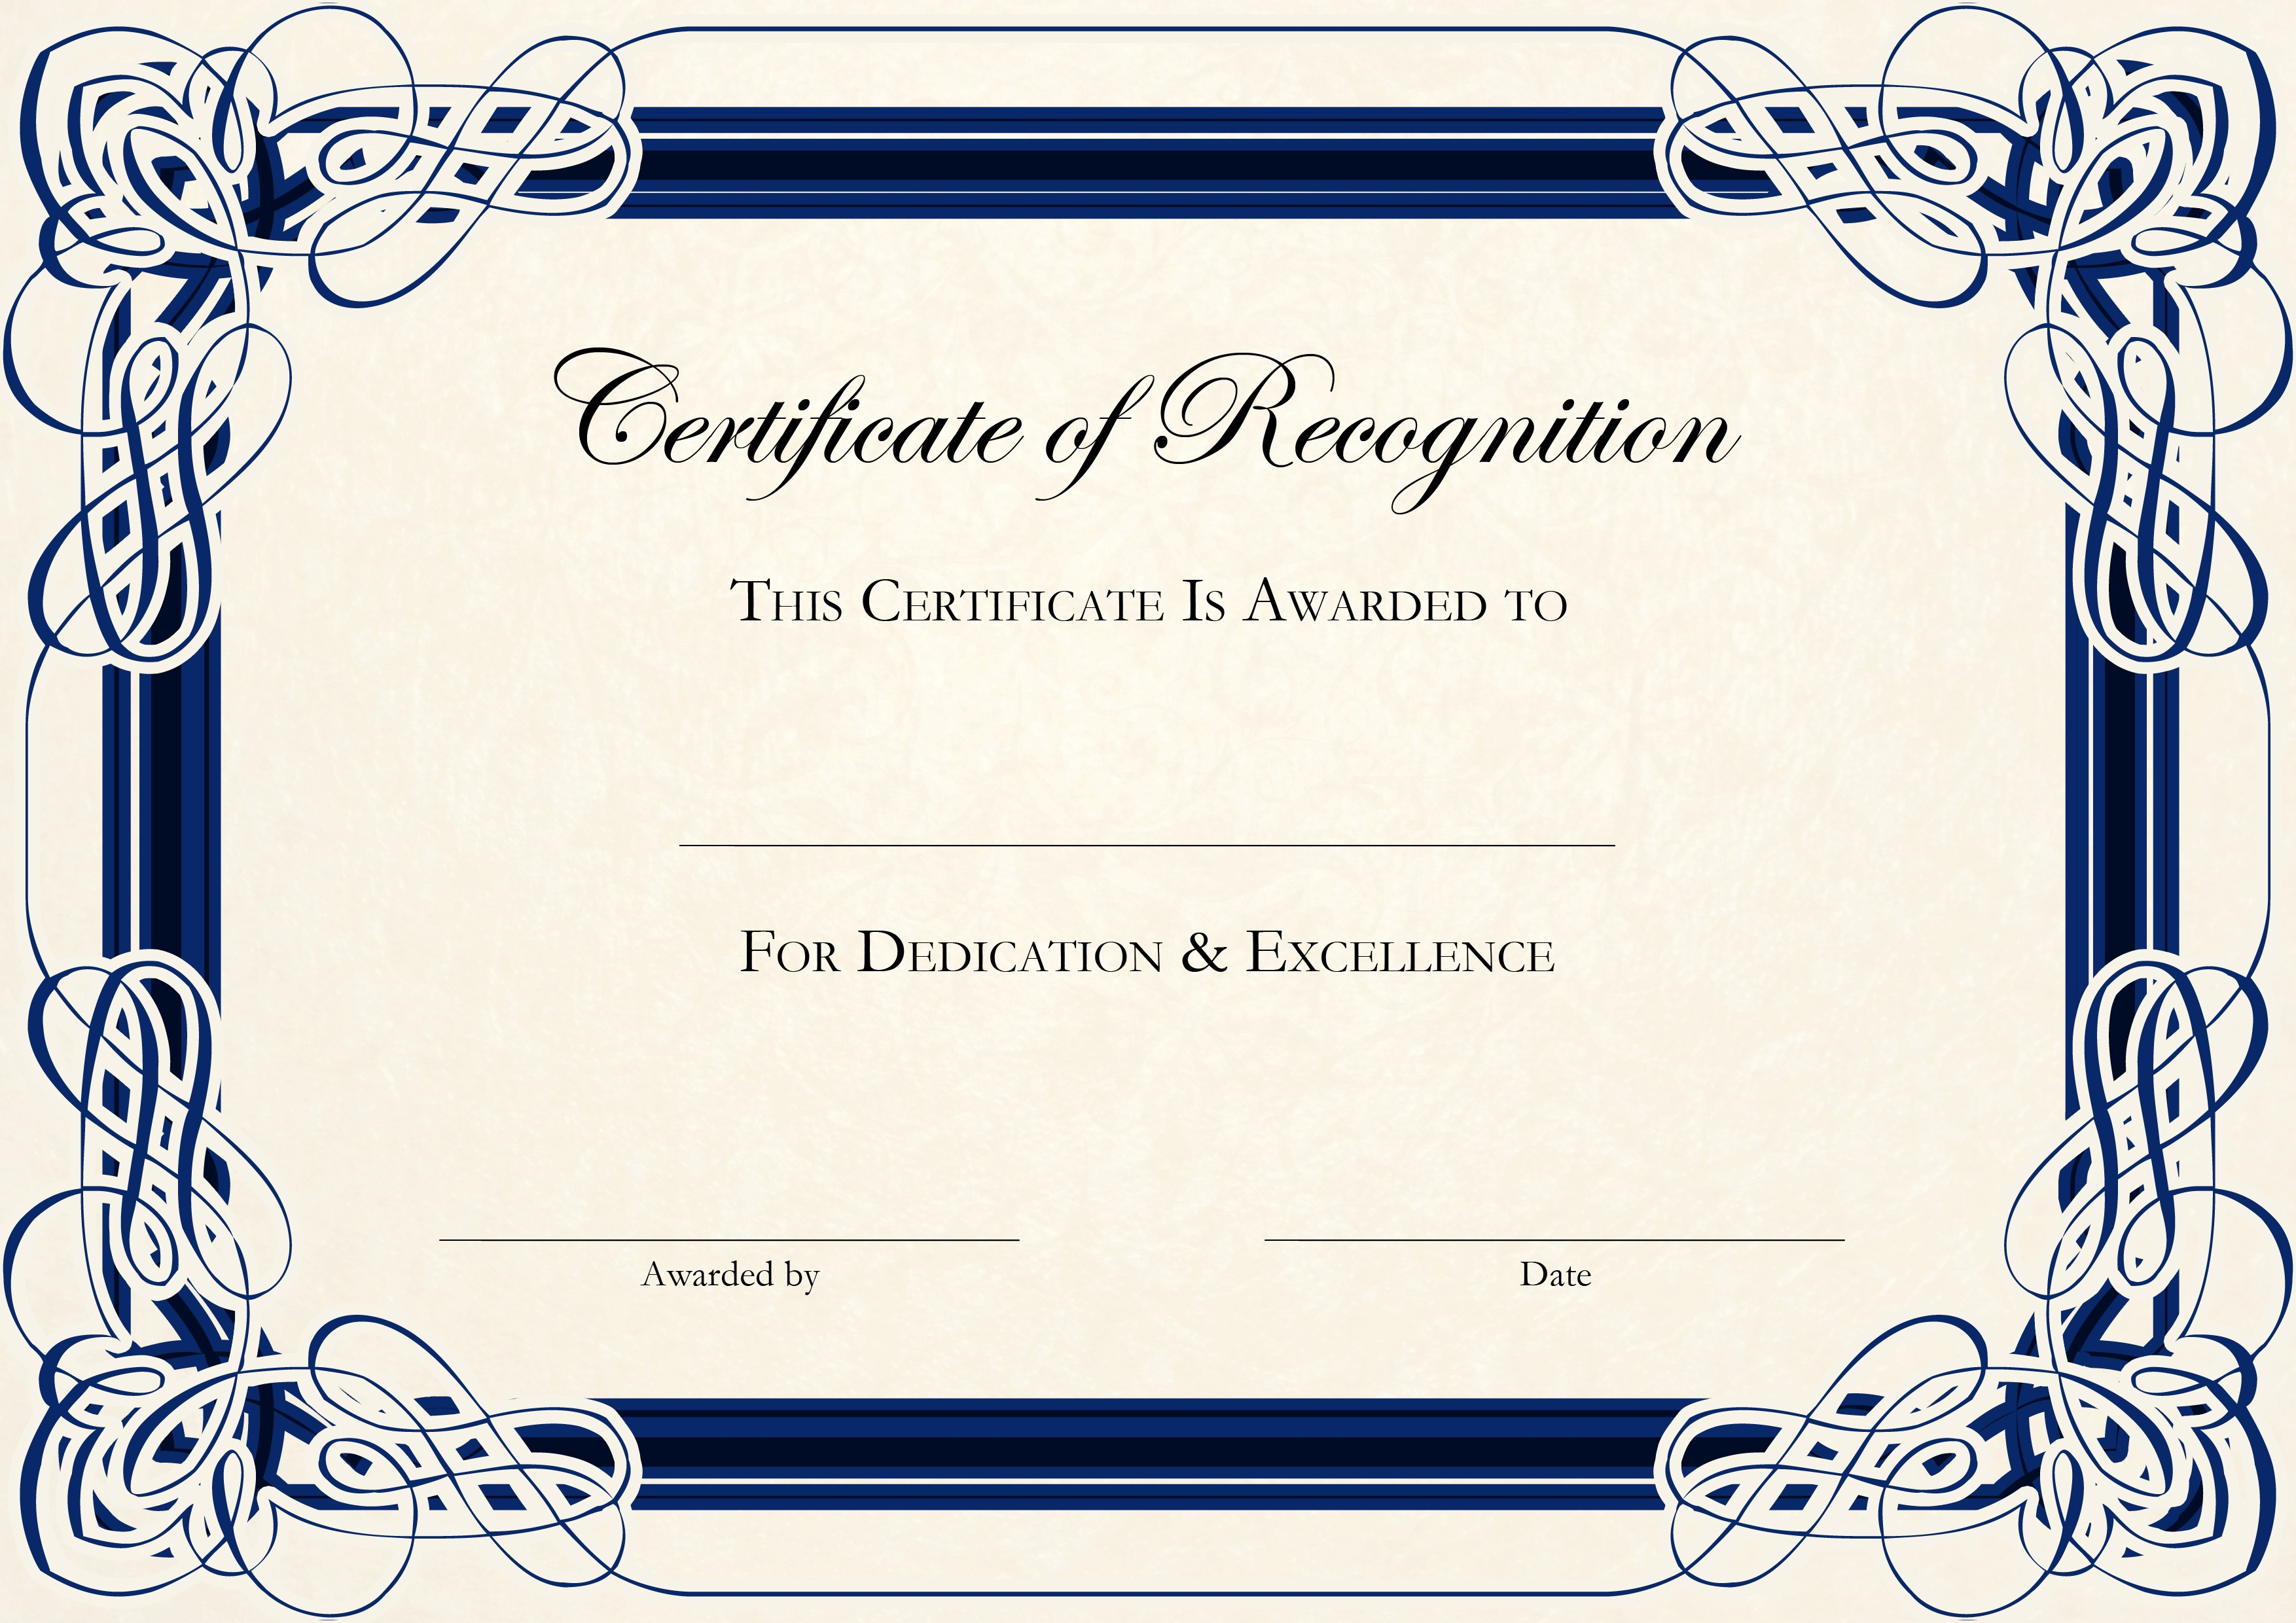 Congratulations Certificate Template Word free template certificate – Congratulations Award Template